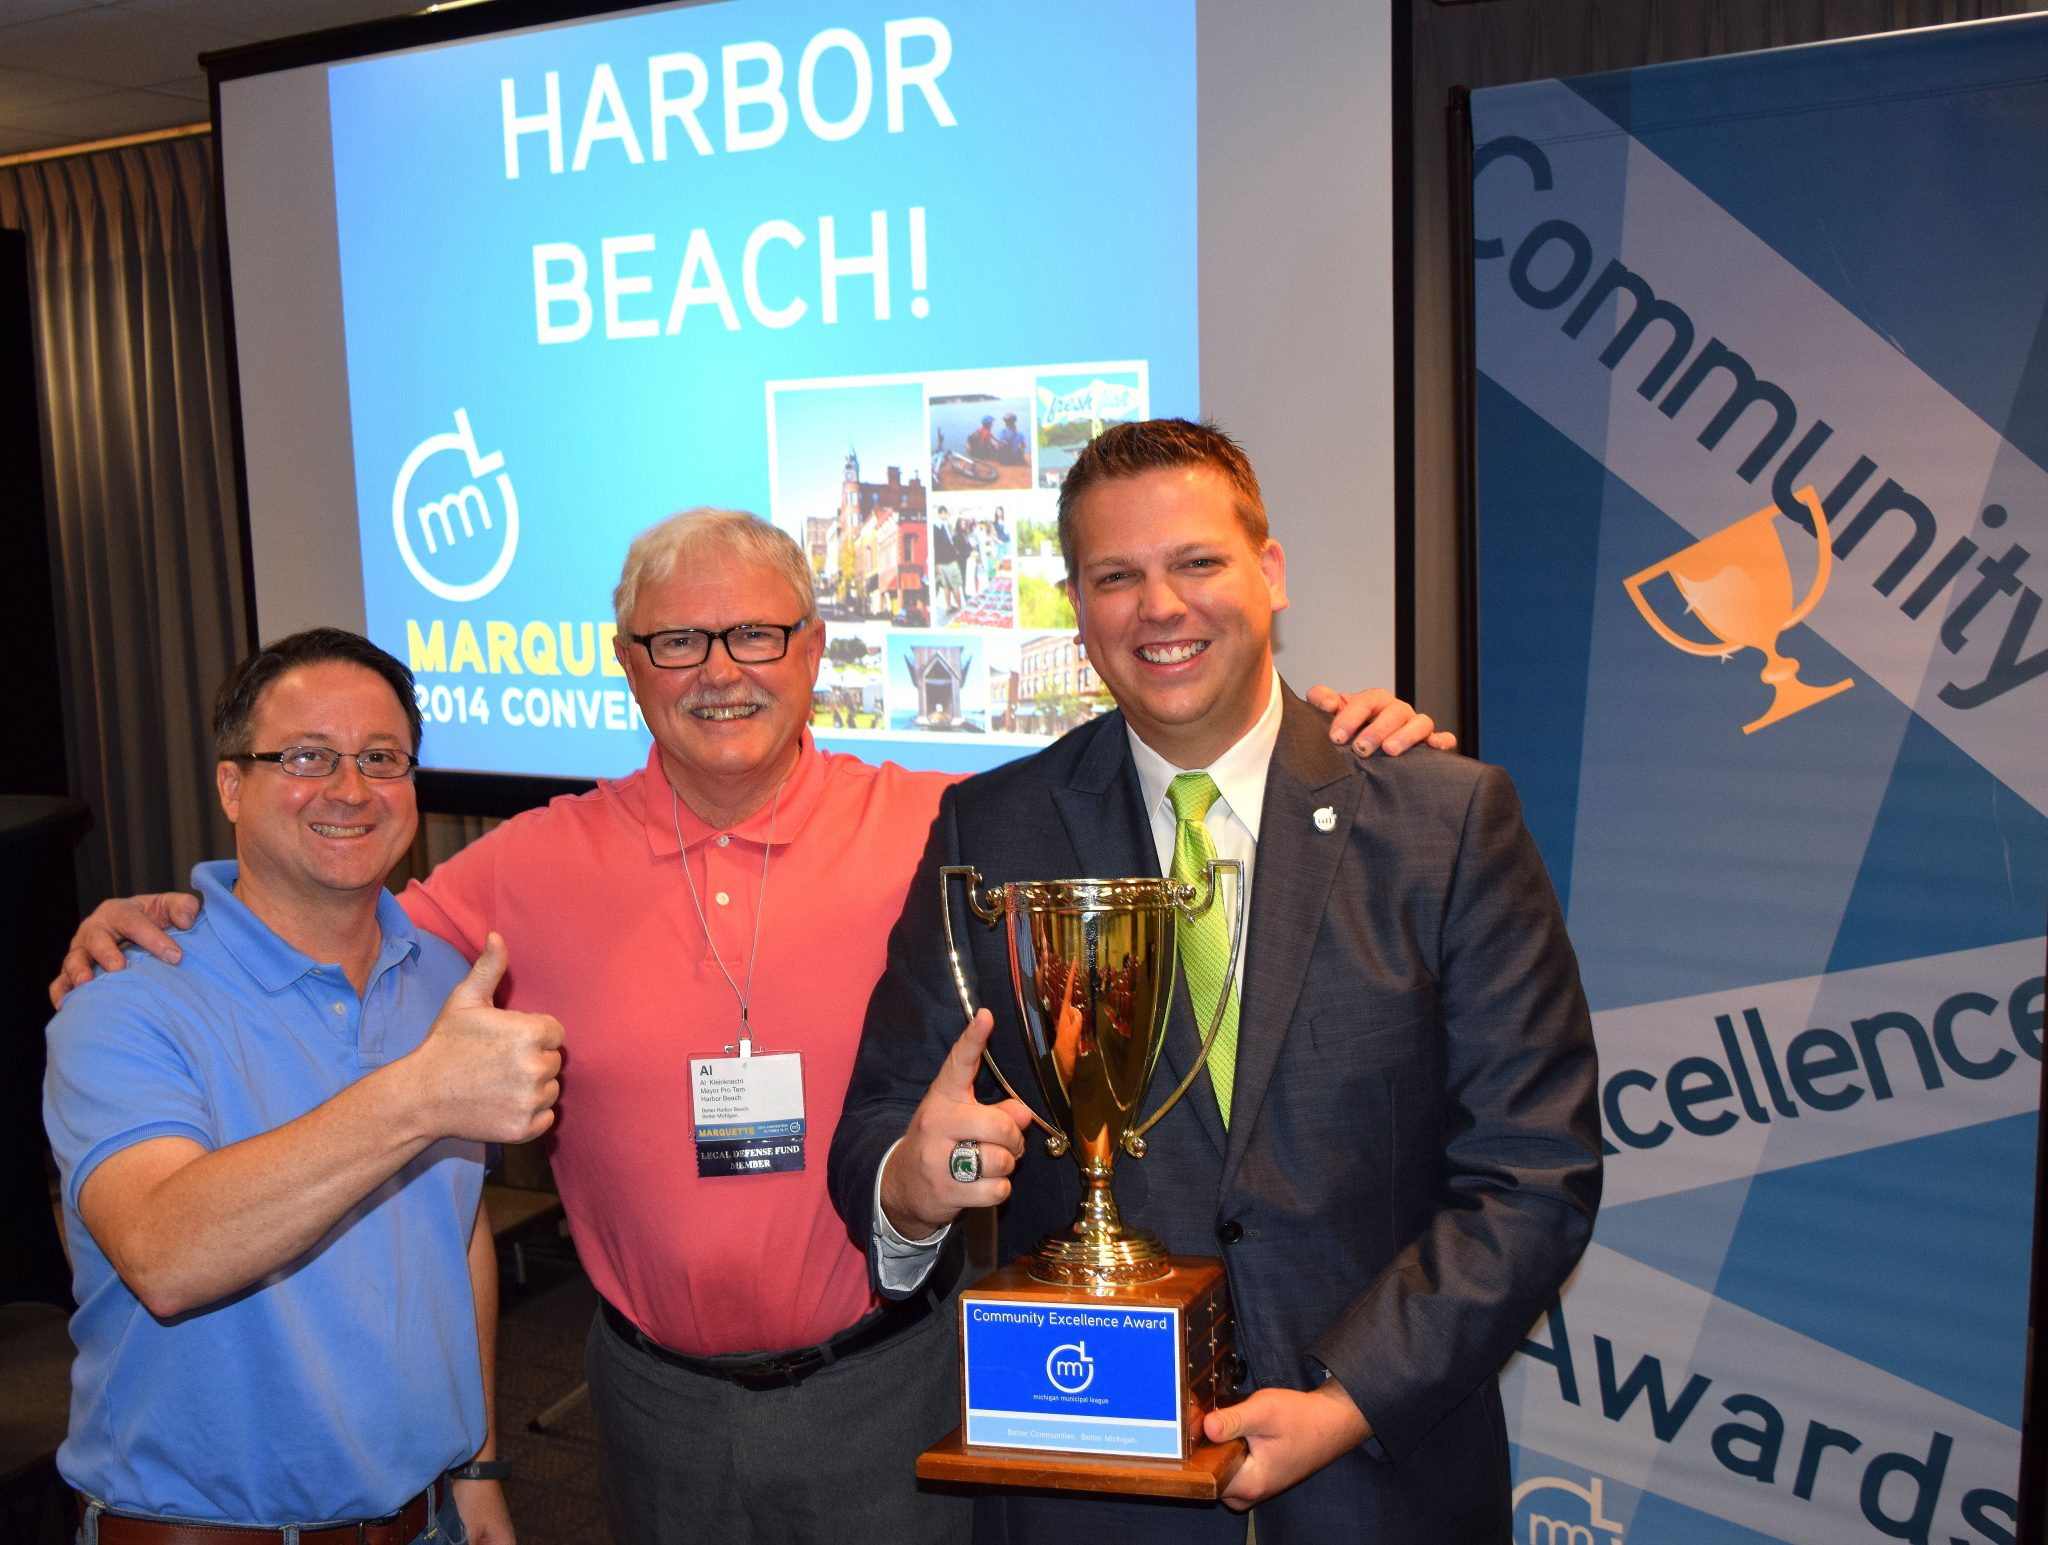 Harbor Beach Wins 2014 Michigan Municipal League Community Excellence Award